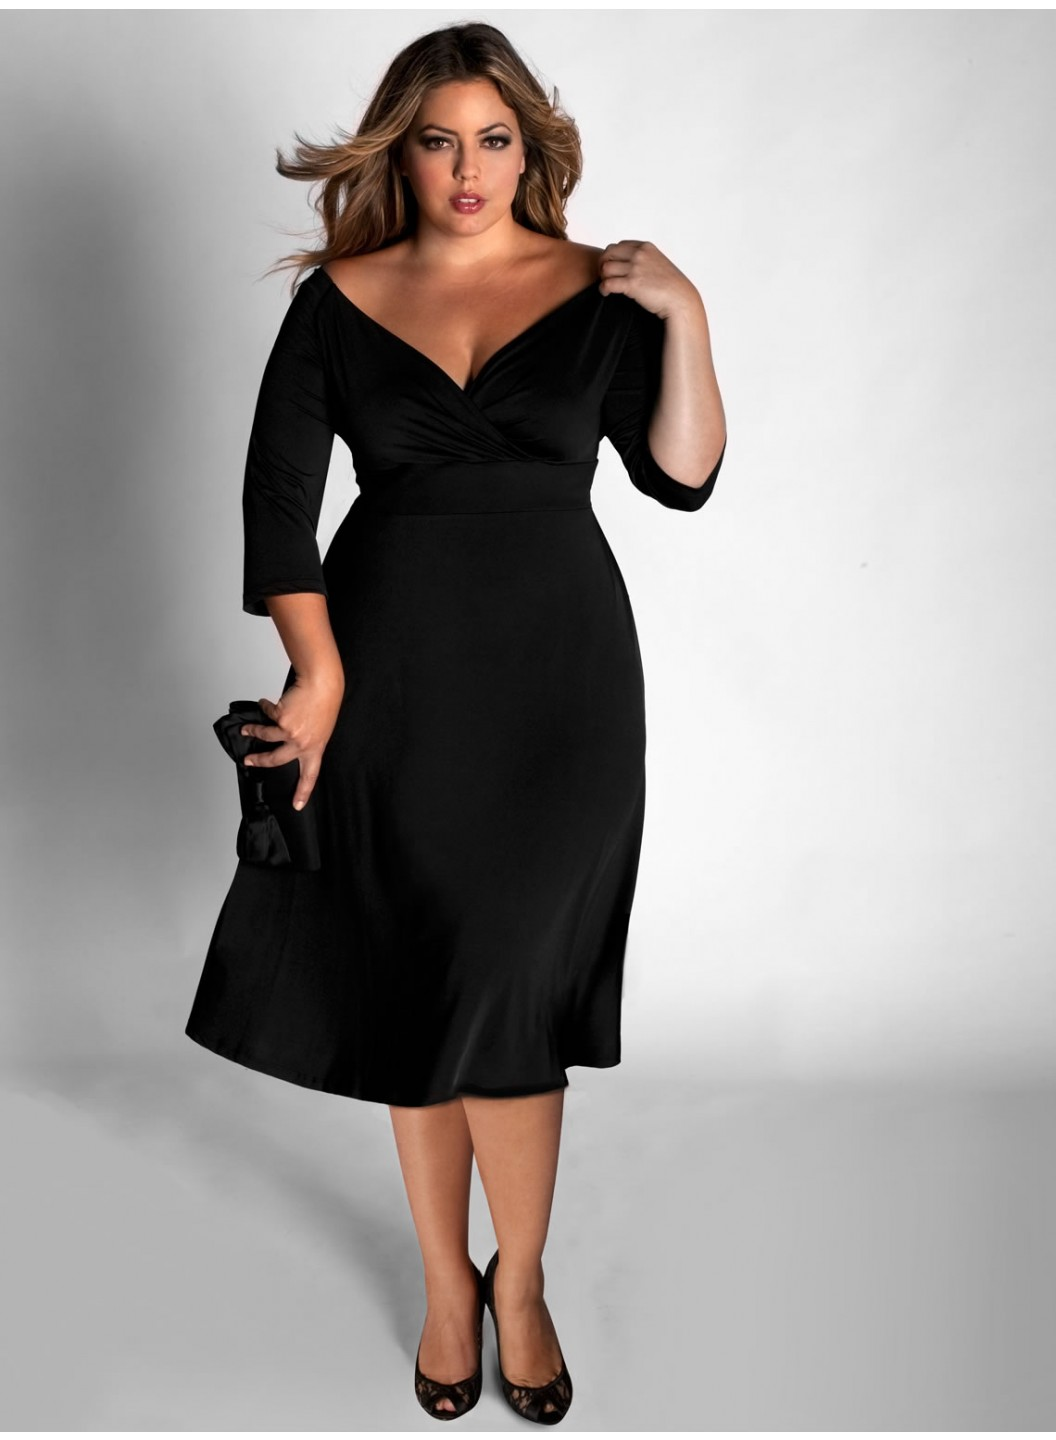 Plus Size Black Dresses For Funeral 2014-2015 | Fashion Trends 2016-2017